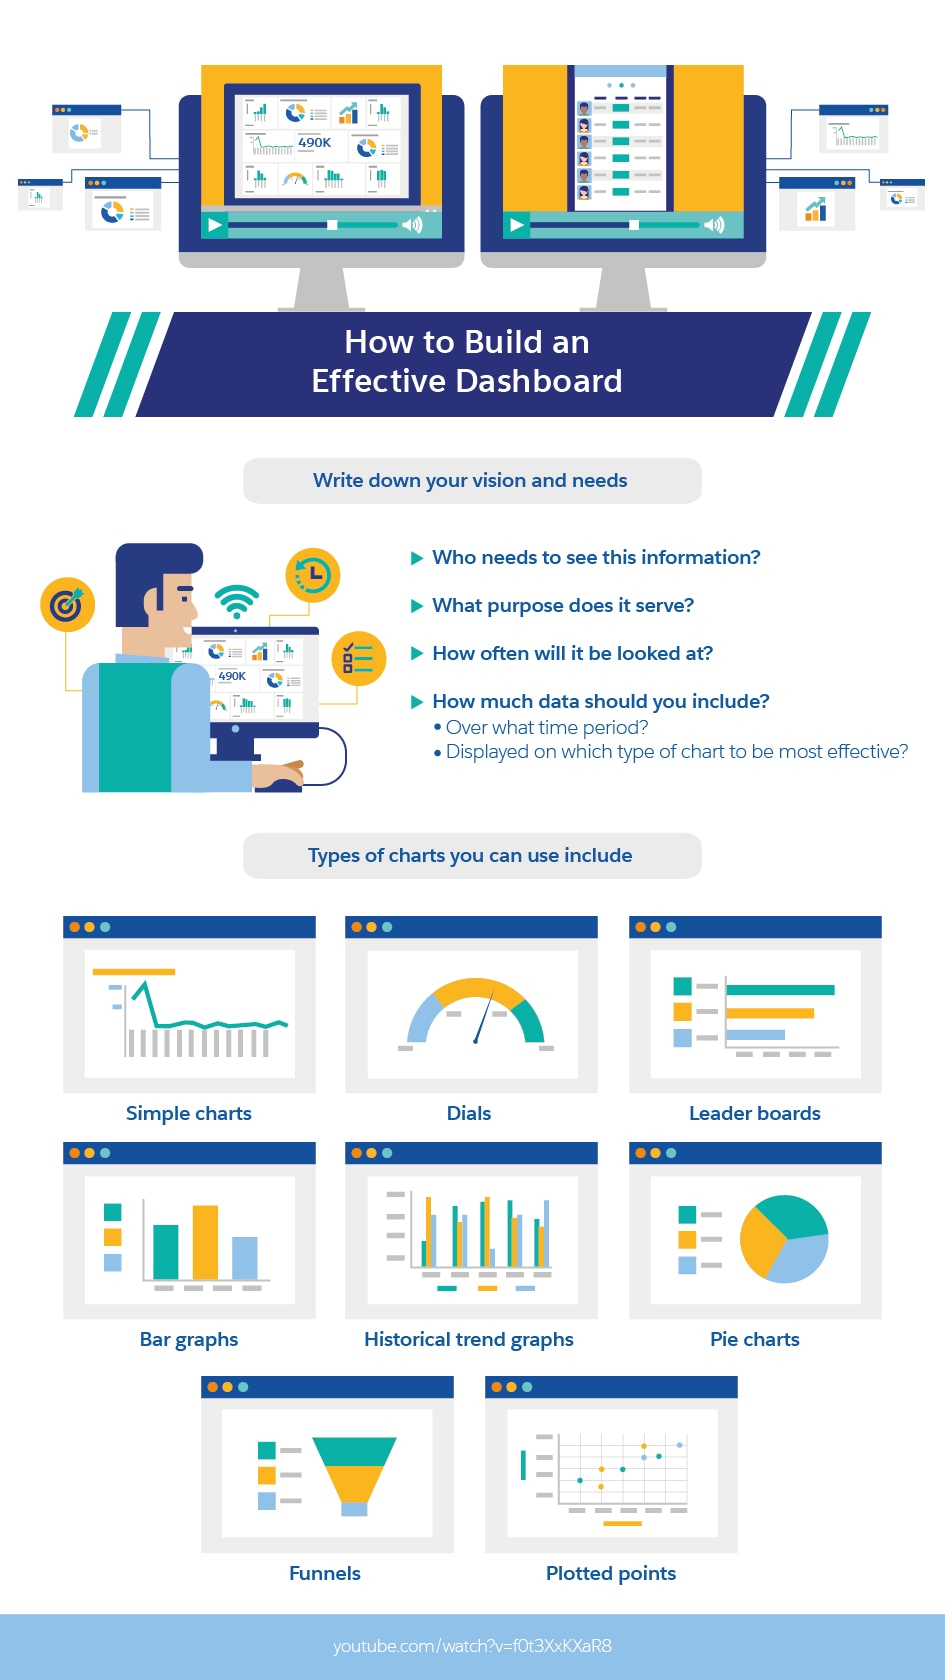 How to Build an Effective Dashboard